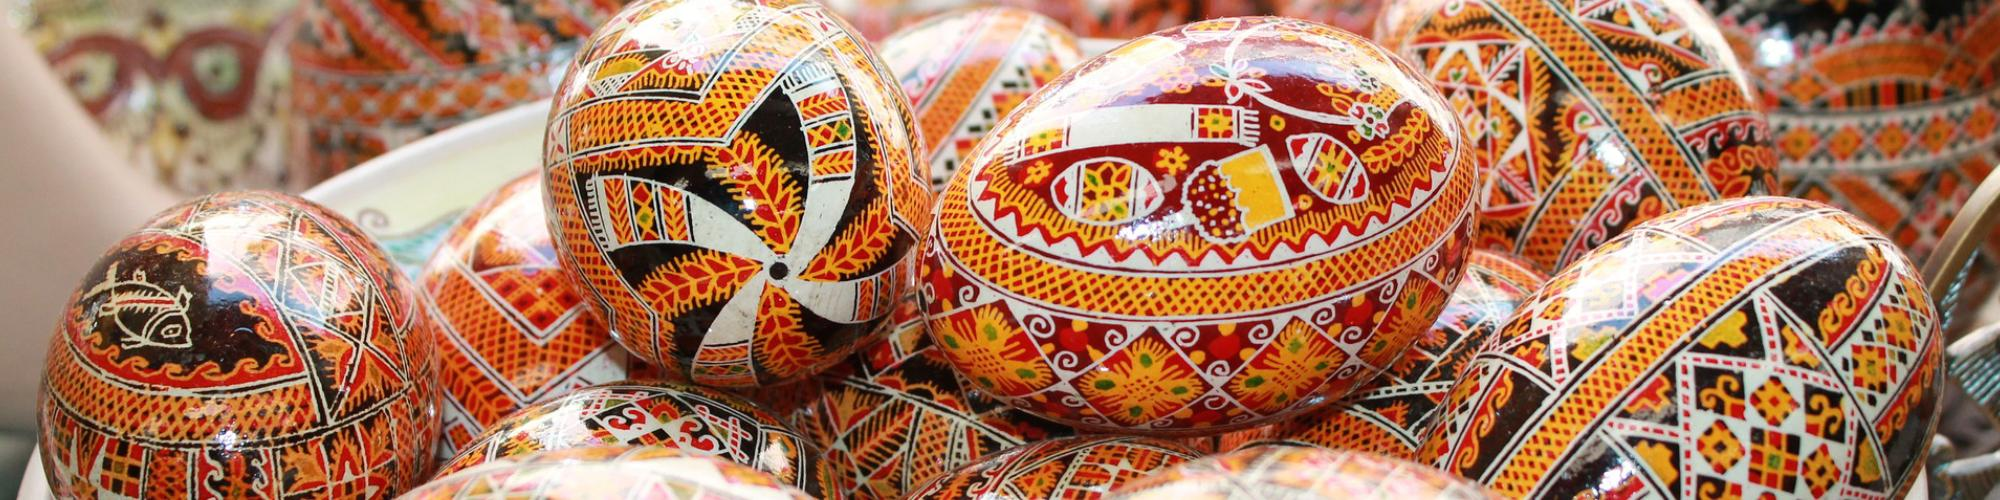 Russian Painted Eggs